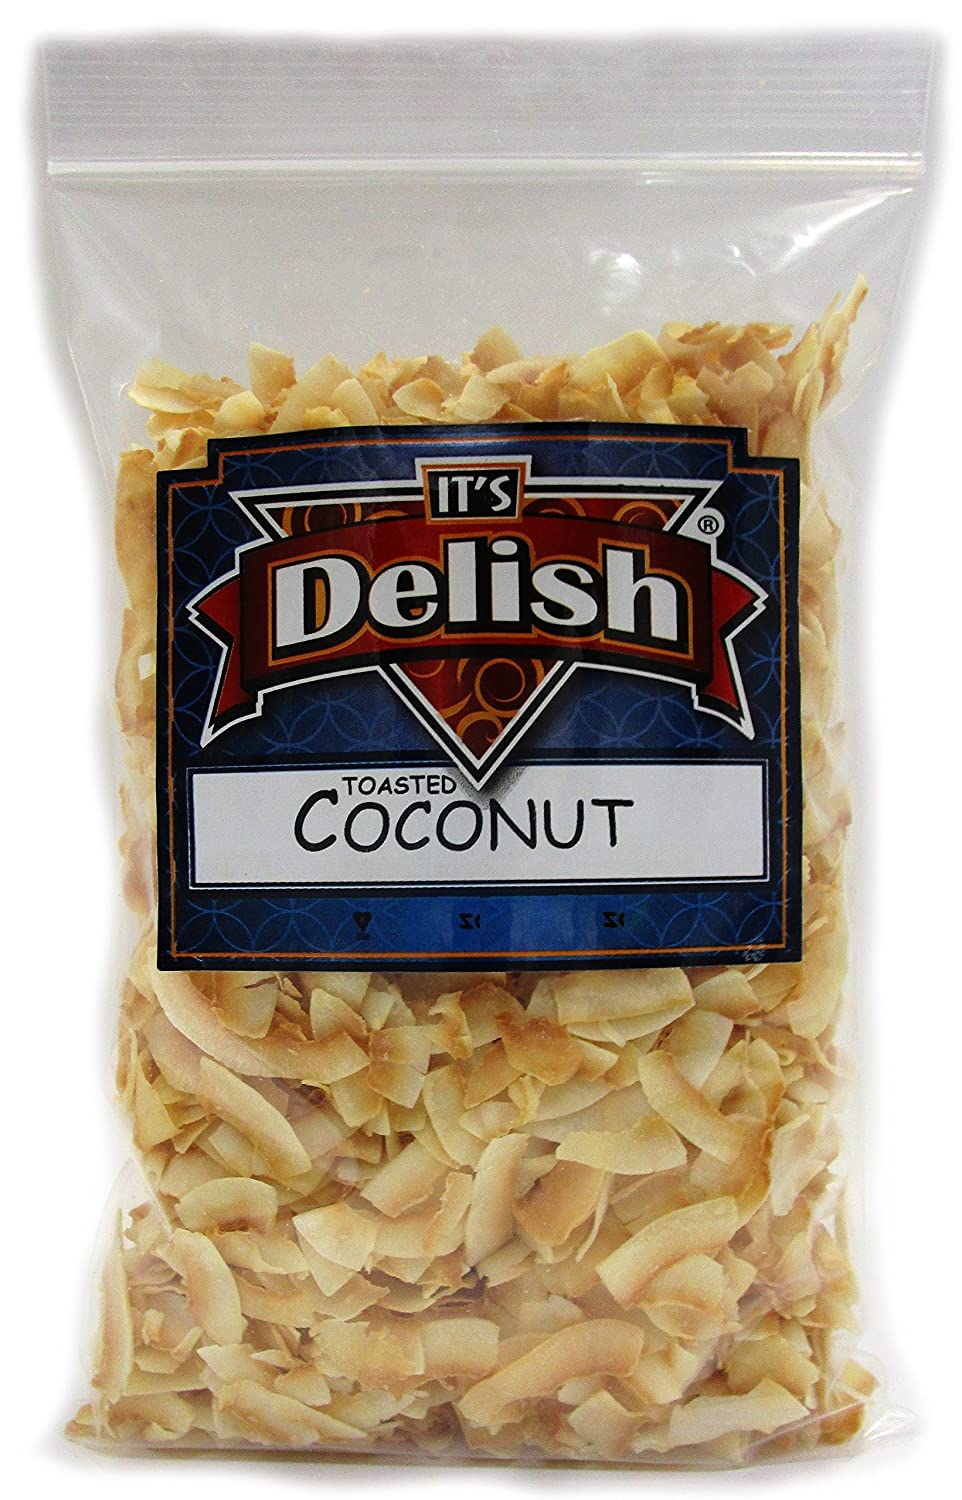 Gourmet Toasted Unsweetened Coconut Chips by Its 10 Boston Mall – Indefinitely LBS Delish